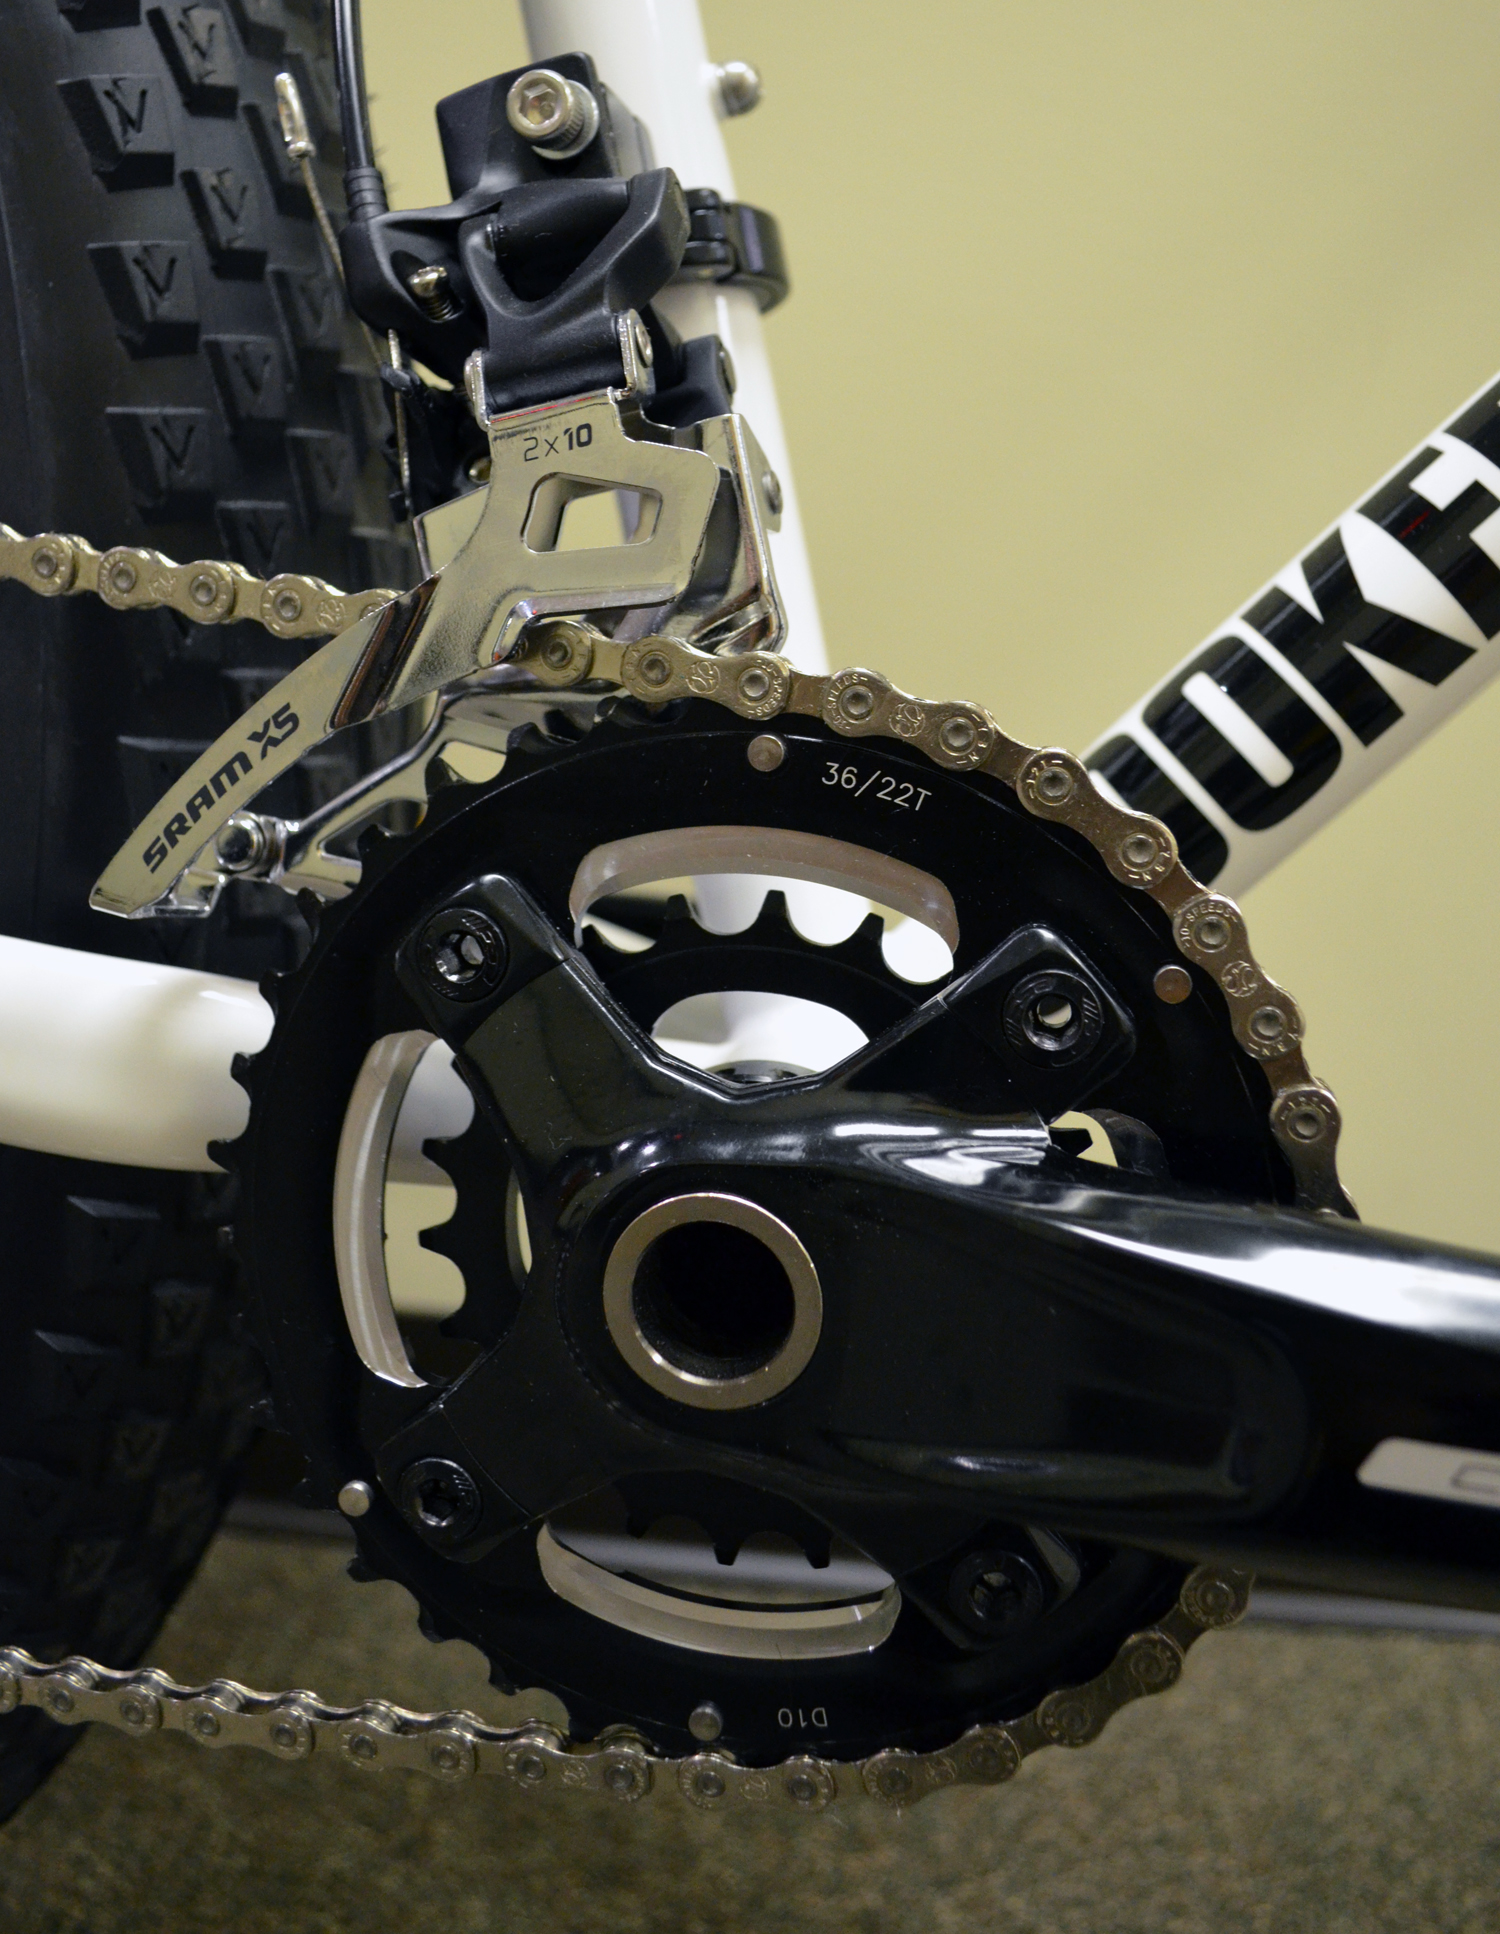 73d340af8b8 The Fat Bikes Are Coming! Meet The Charge Cooker Maxi. – Performance Bicycle  Blog